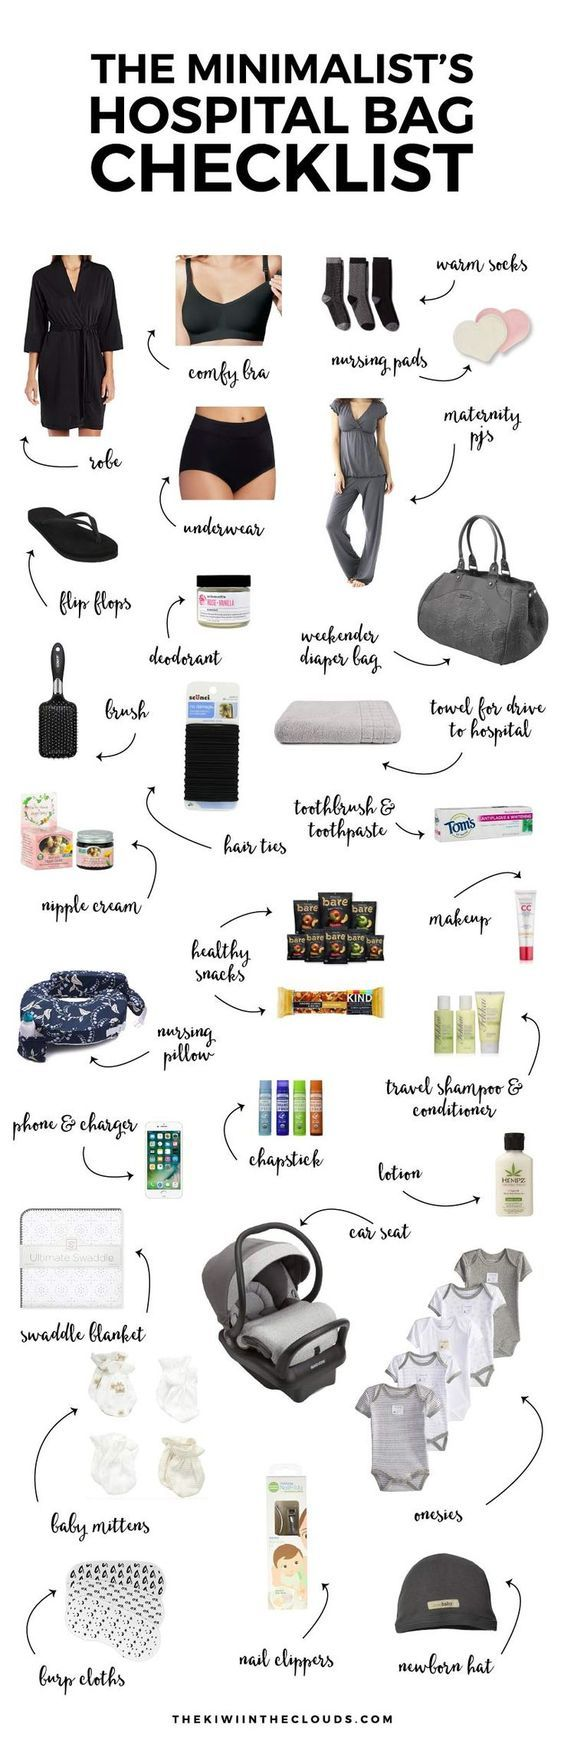 Hospital Bag Checklist | Newborn Advice | Pregnancy Tips